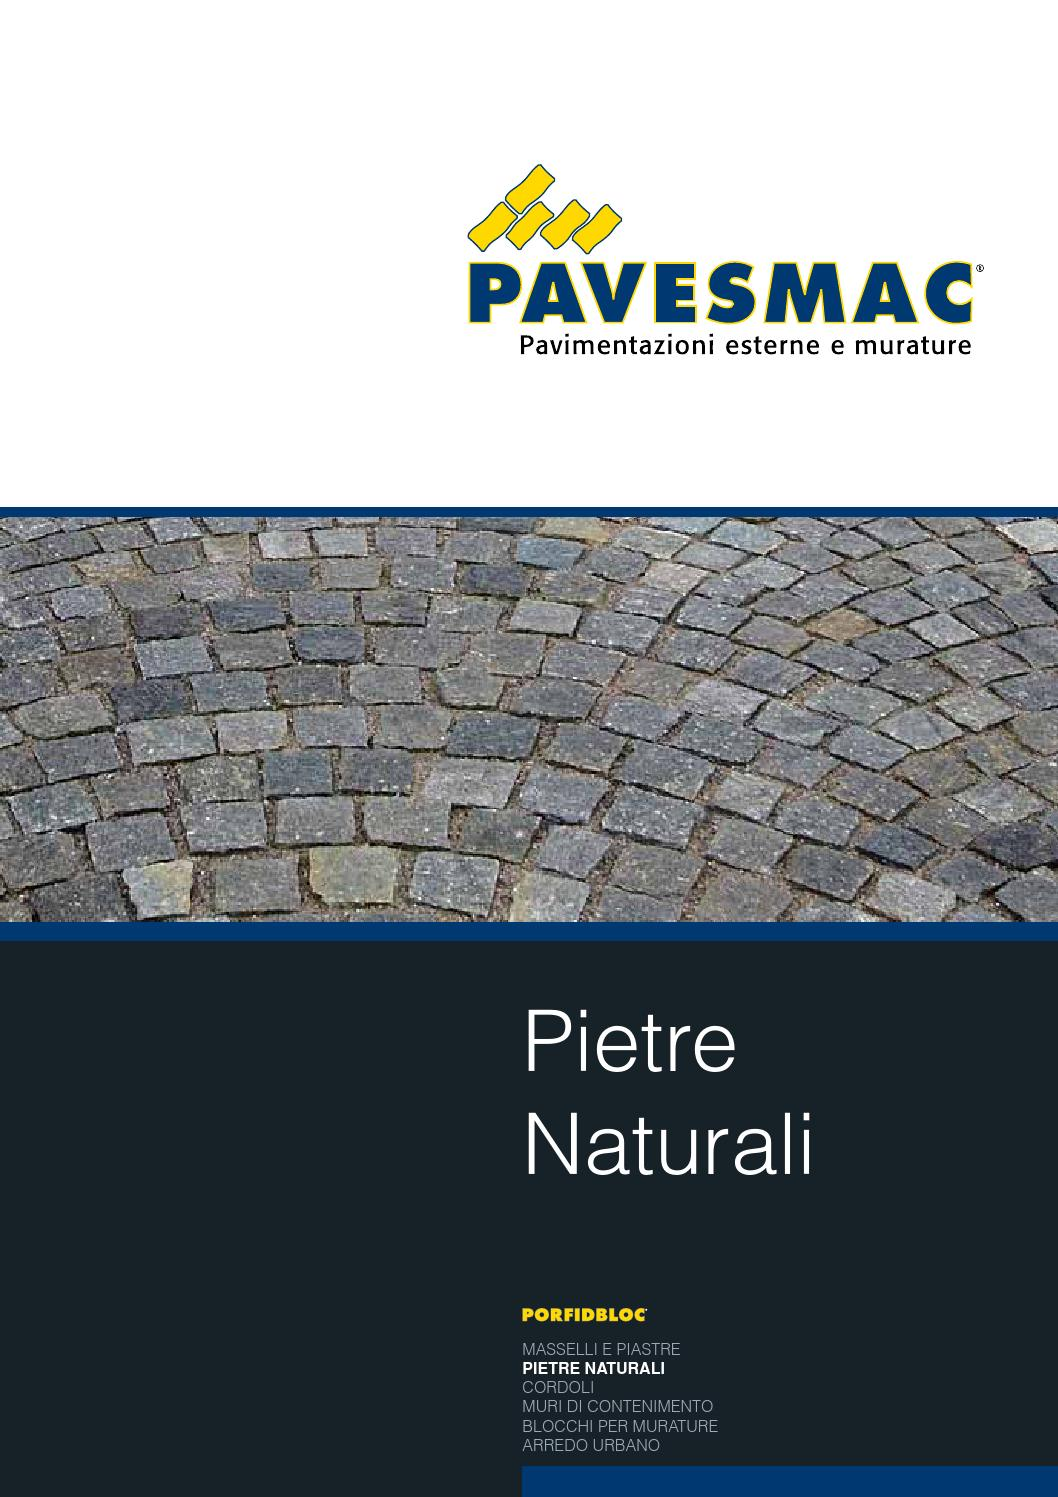 Pavesmac catalogo pietre naturali by blulab s r l issuu for Pietre d arredo interno